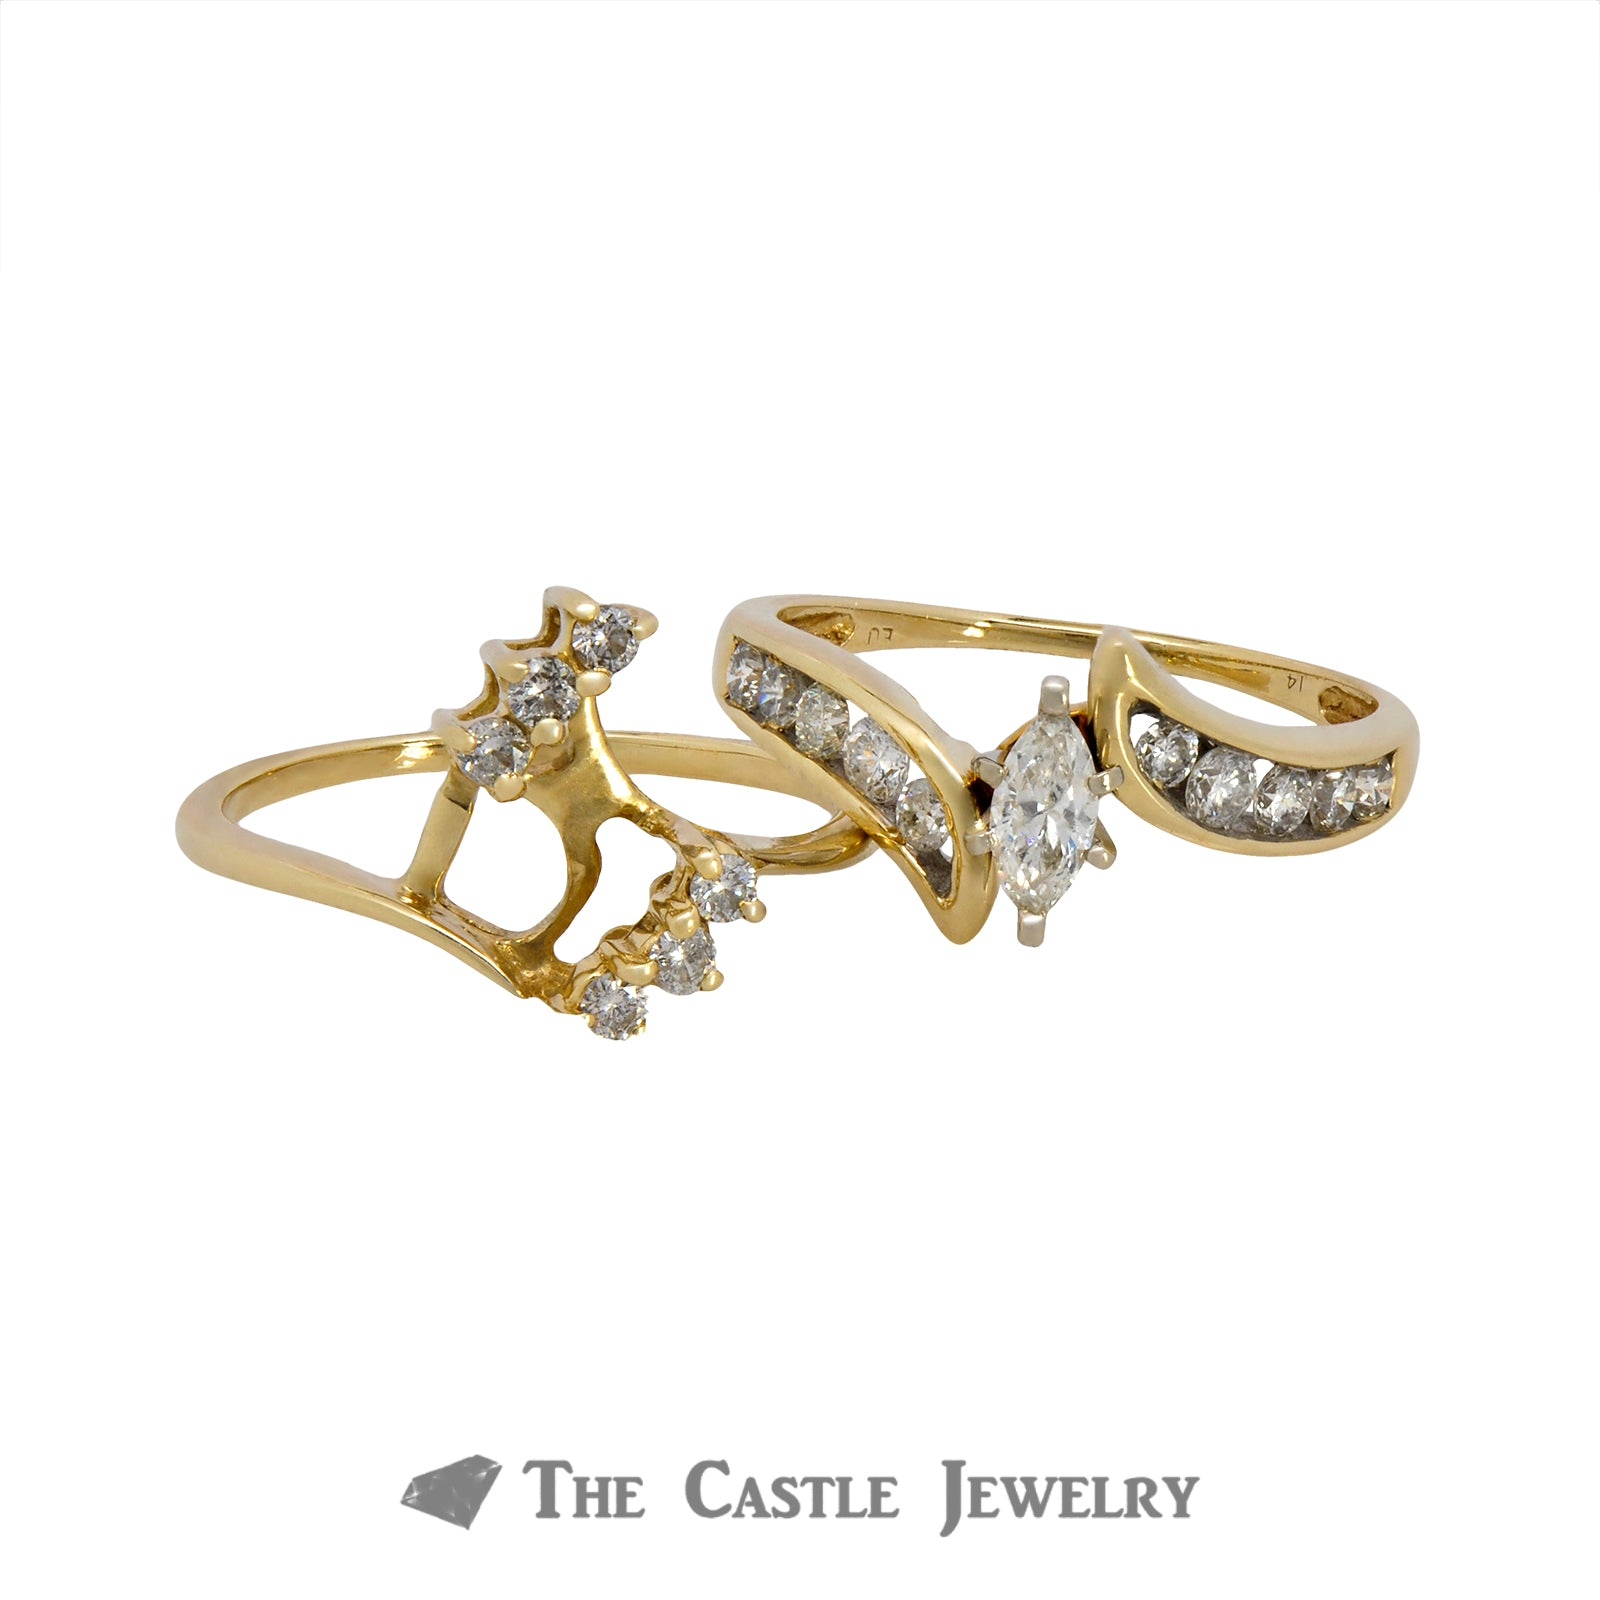 Marquise Cut Diamond Bridal Set with Round Diamond Accents in 14k Yellow Gold-3